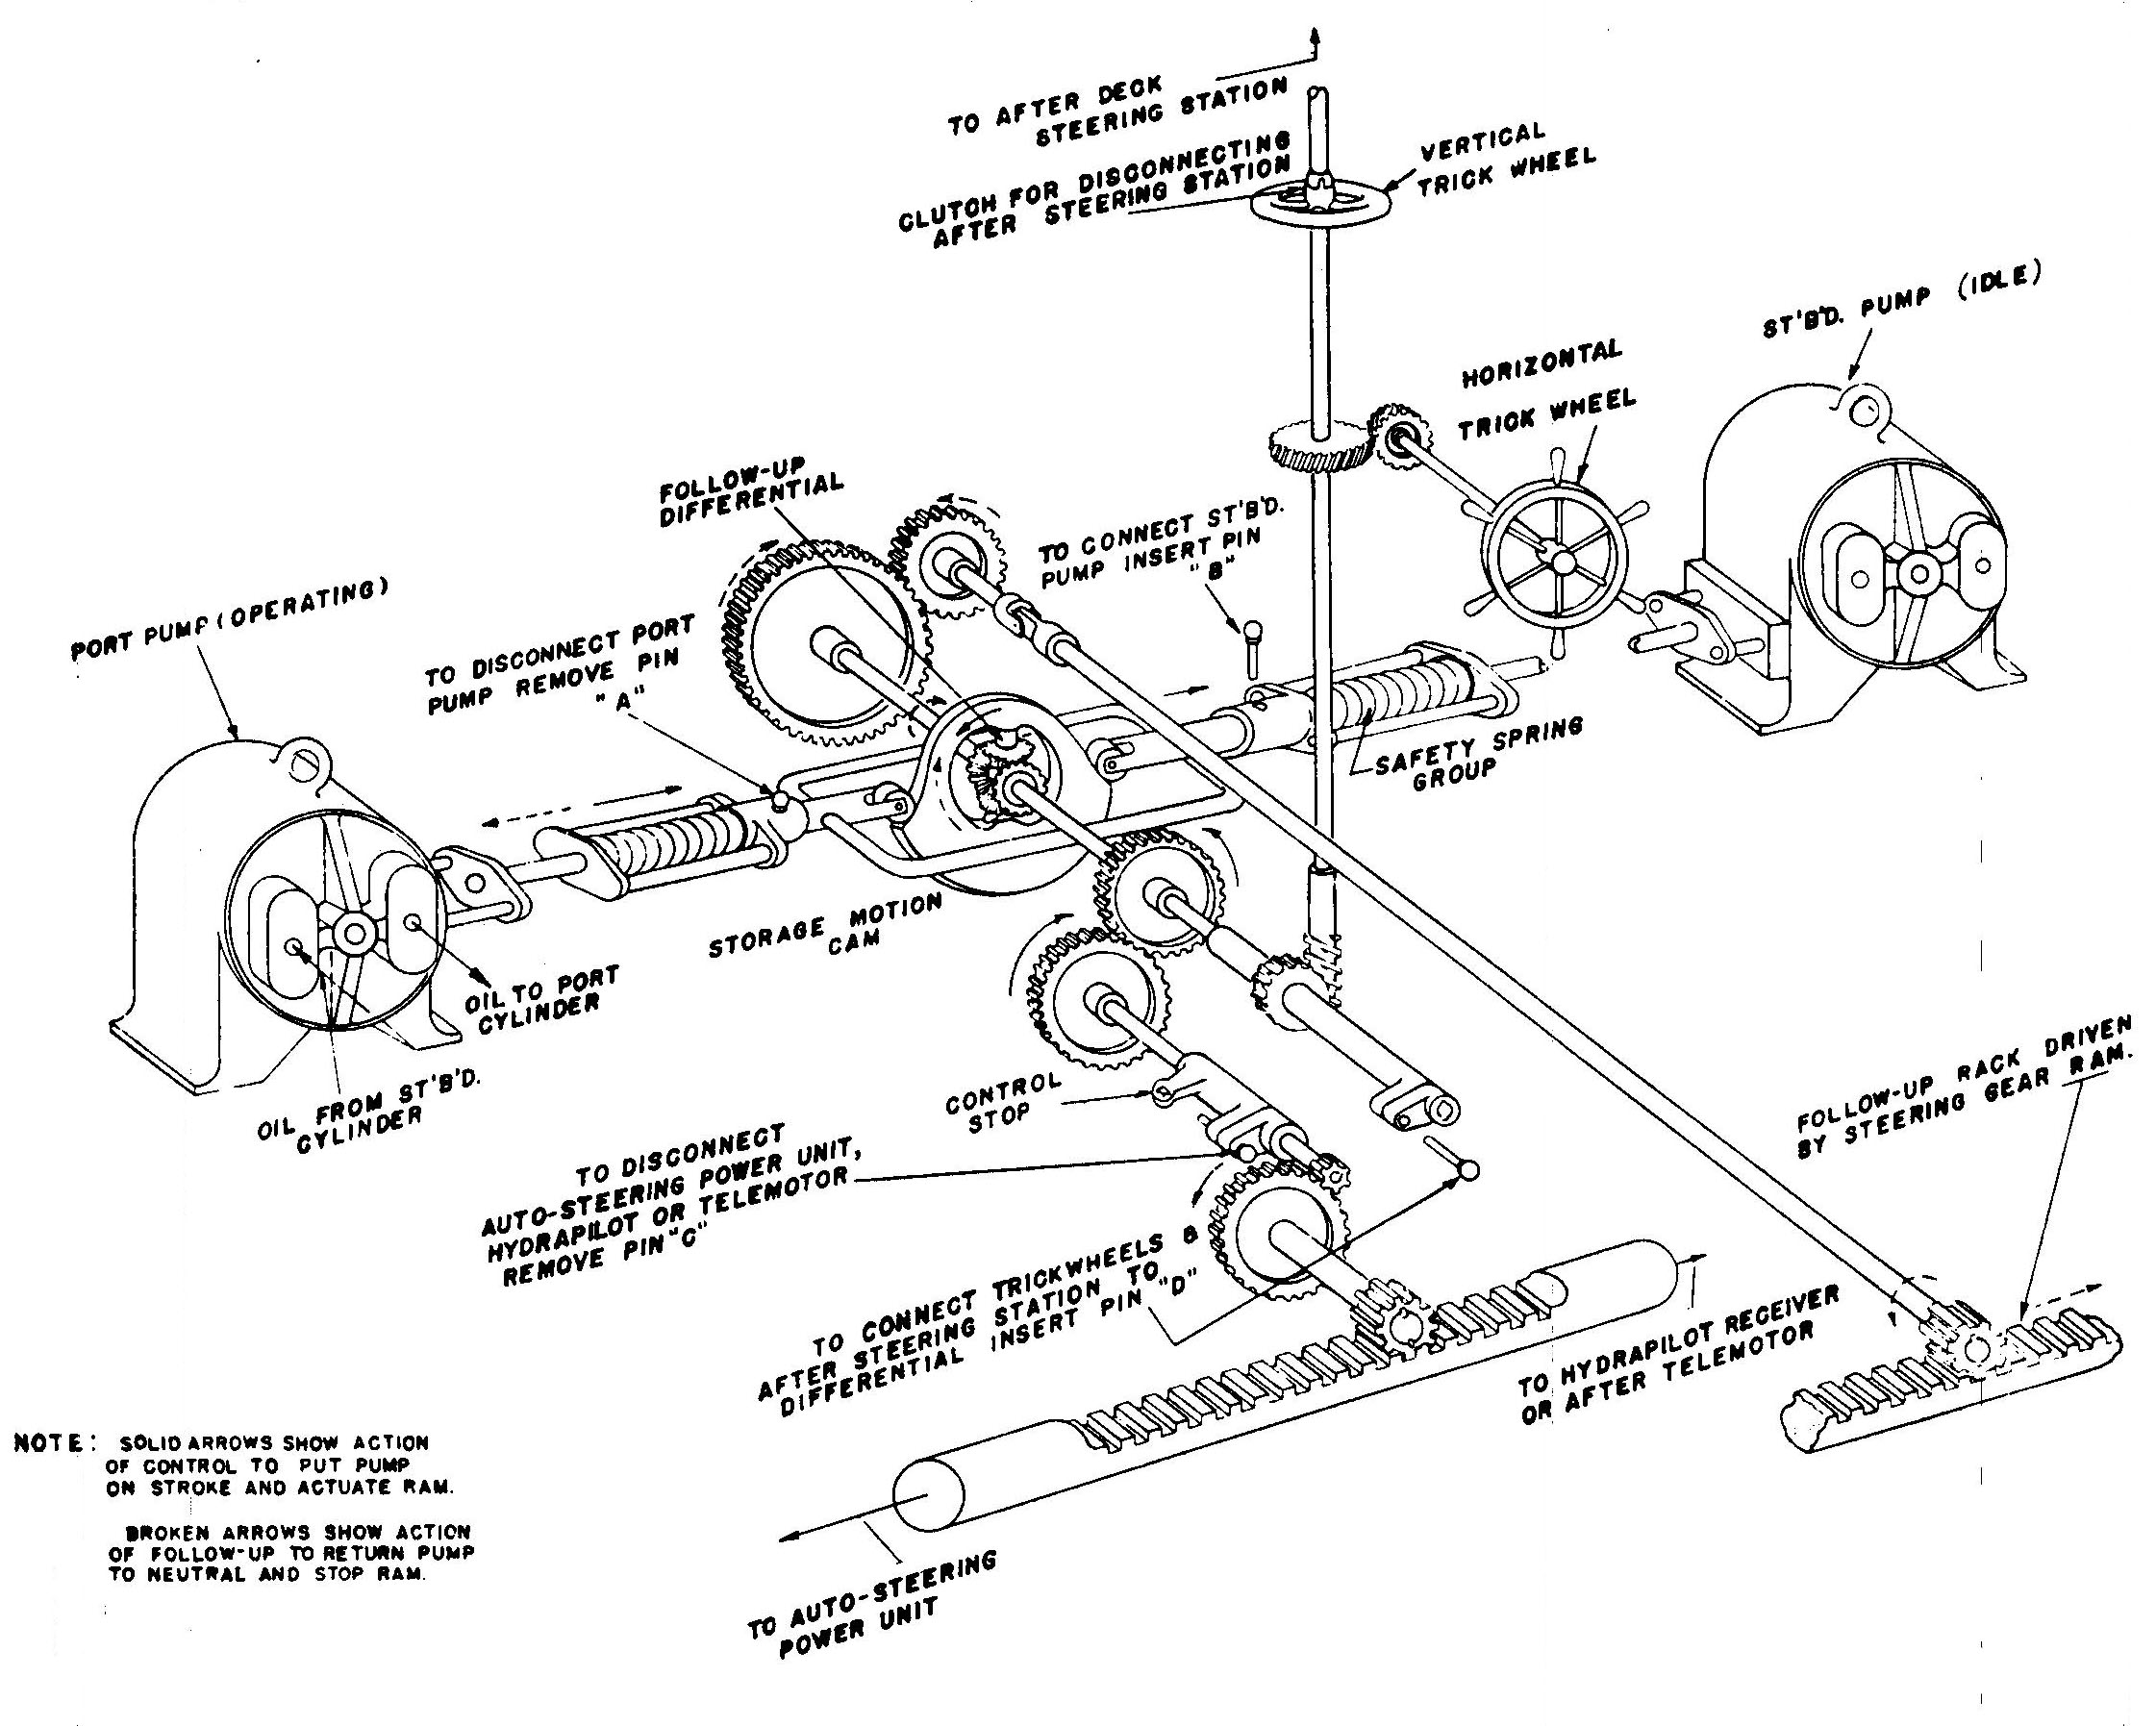 Tsps Engineering Manual Steering Schematic Differential Follow Up Control